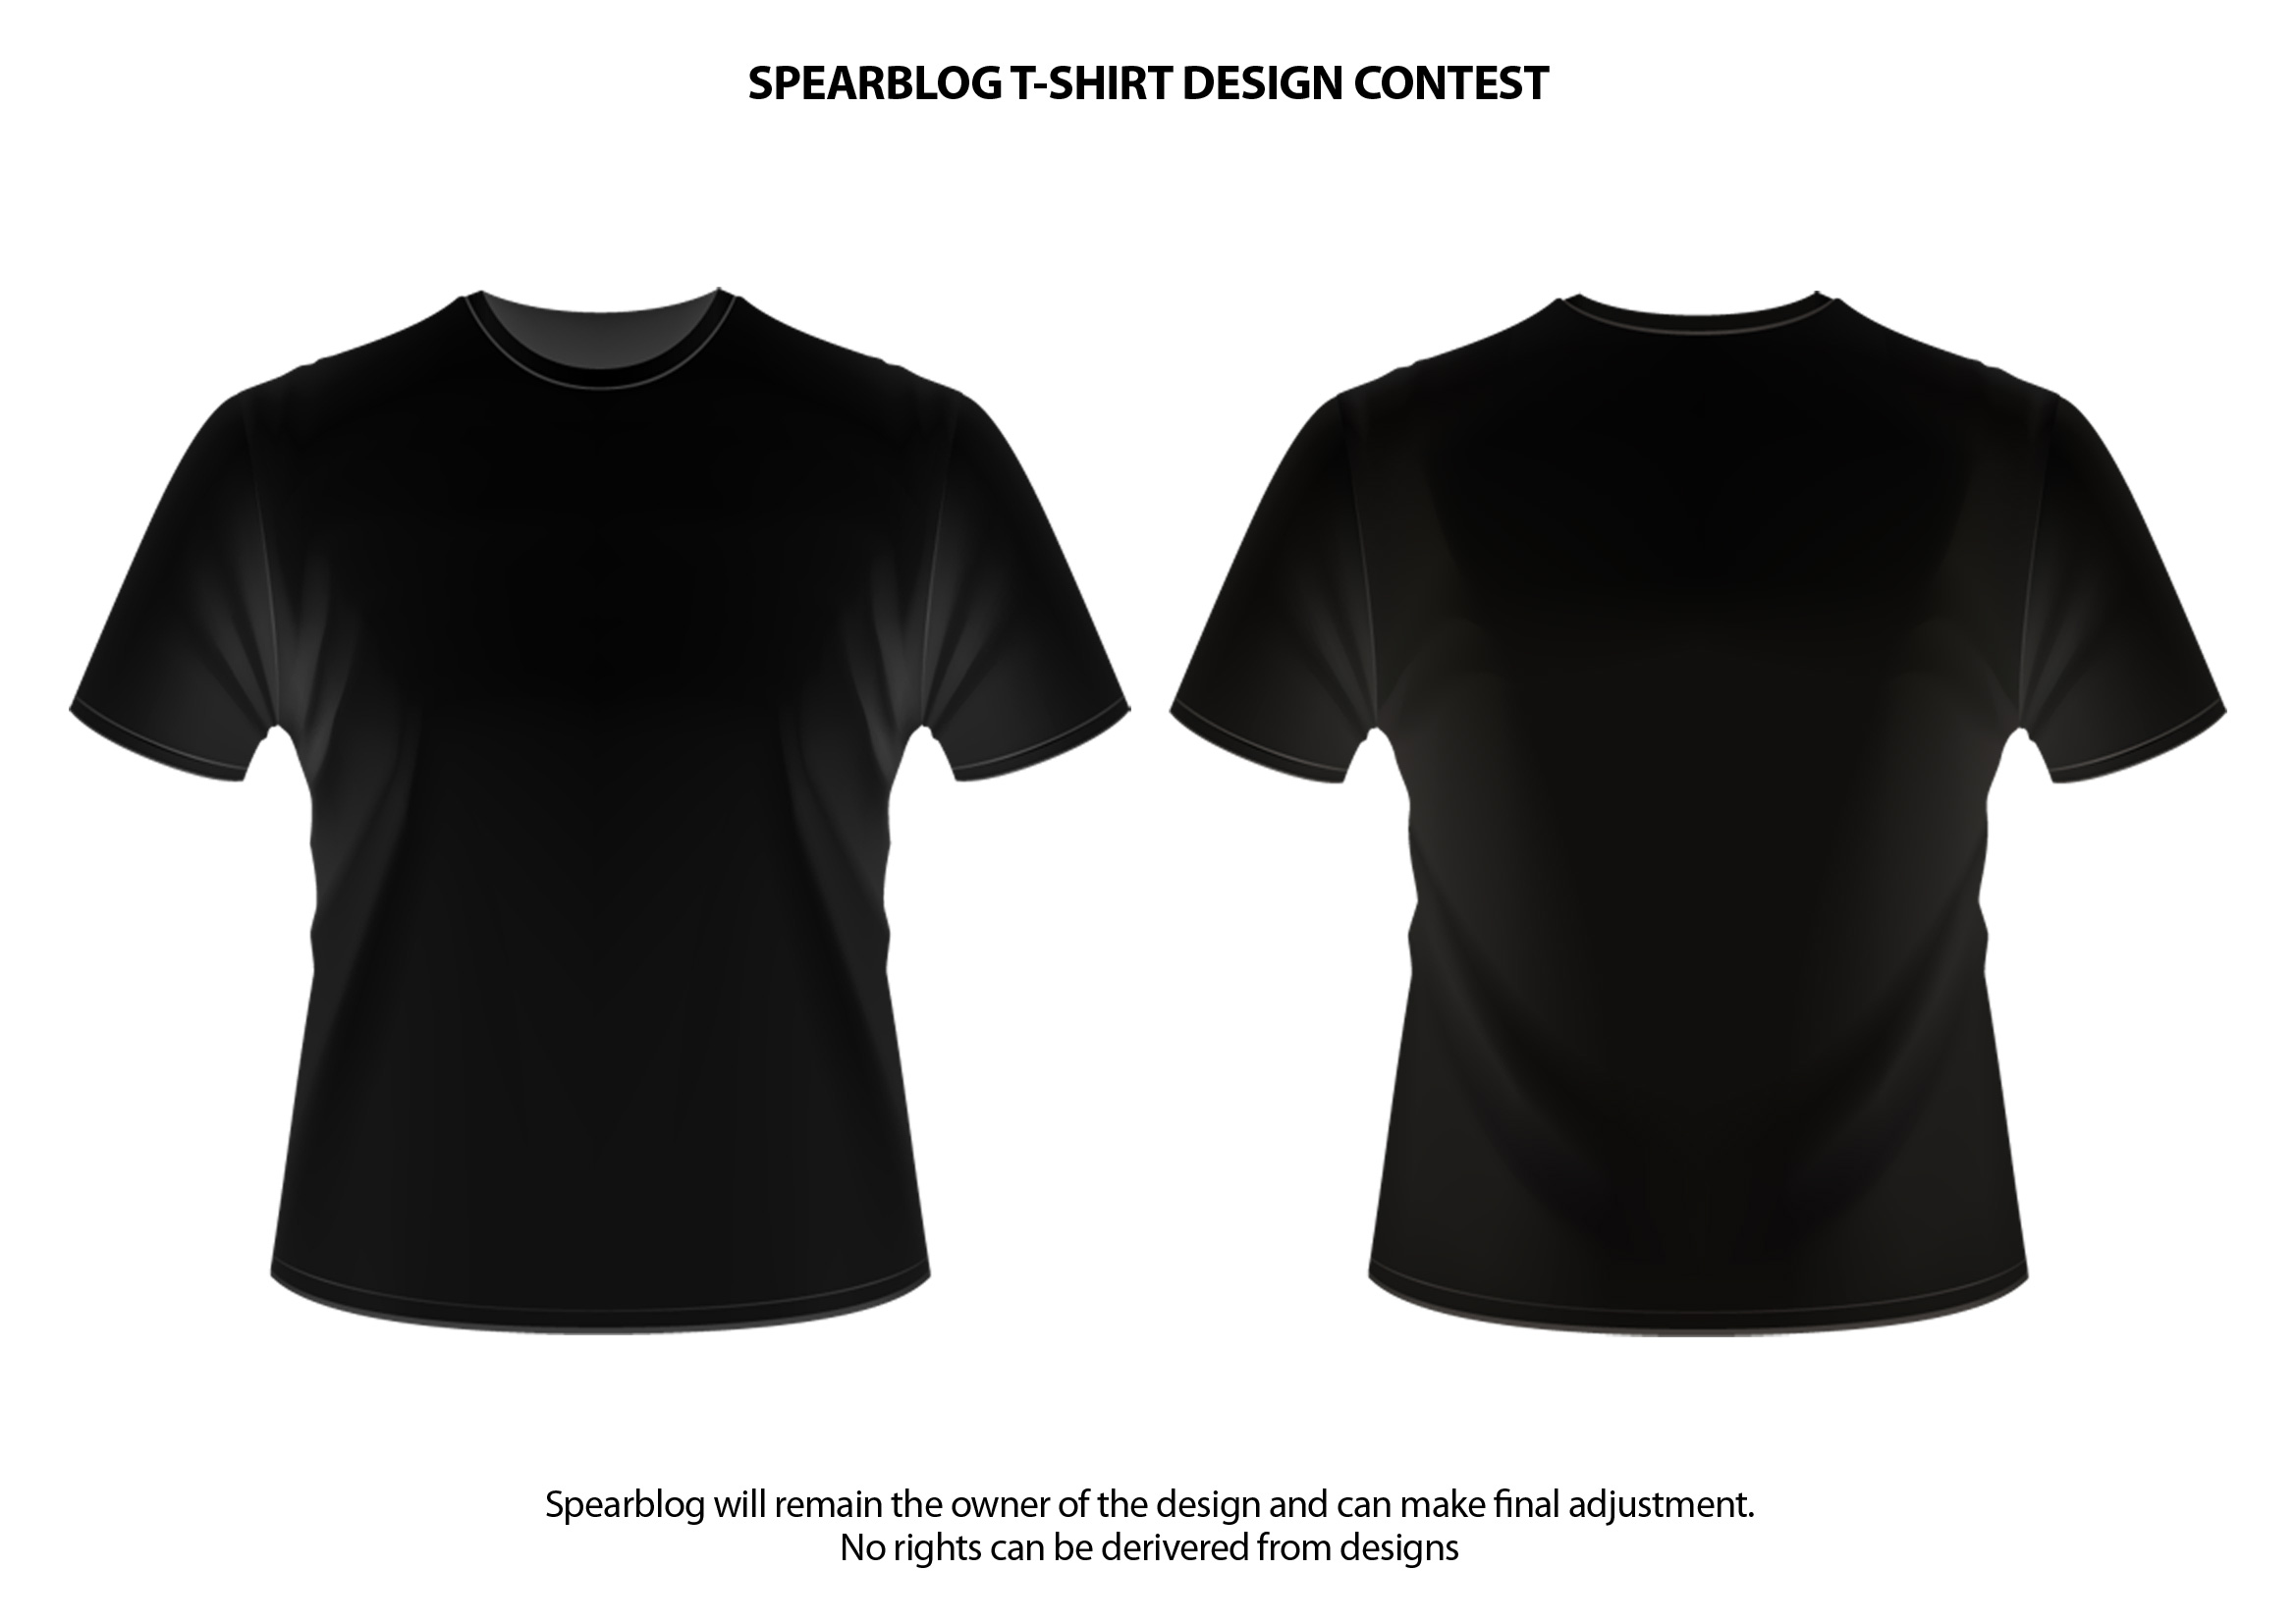 spearblog t shirt and logo design competition spearblog. Black Bedroom Furniture Sets. Home Design Ideas